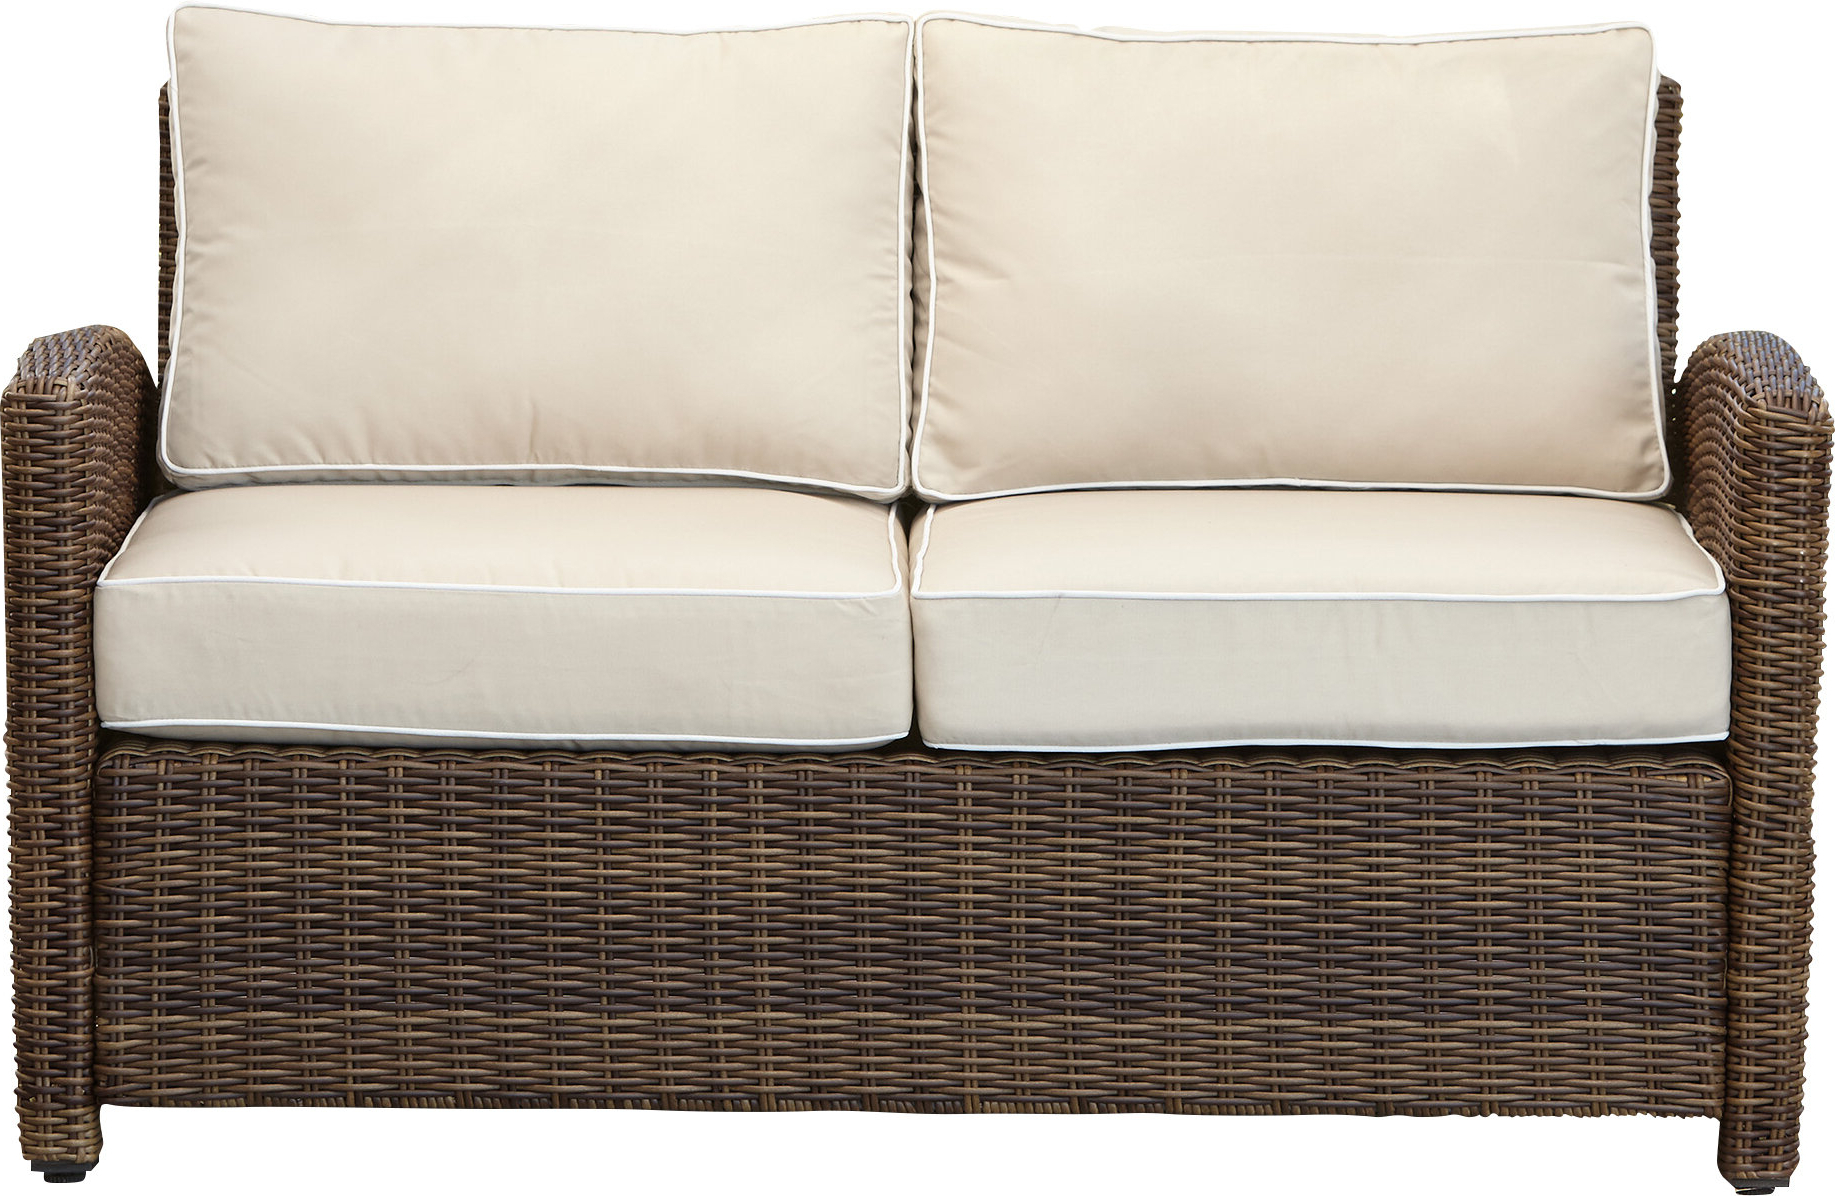 Lawson Wicker Loveseat With Cushions Within Famous Lawson Wicker Loveseats With Cushions (Gallery 3 of 25)